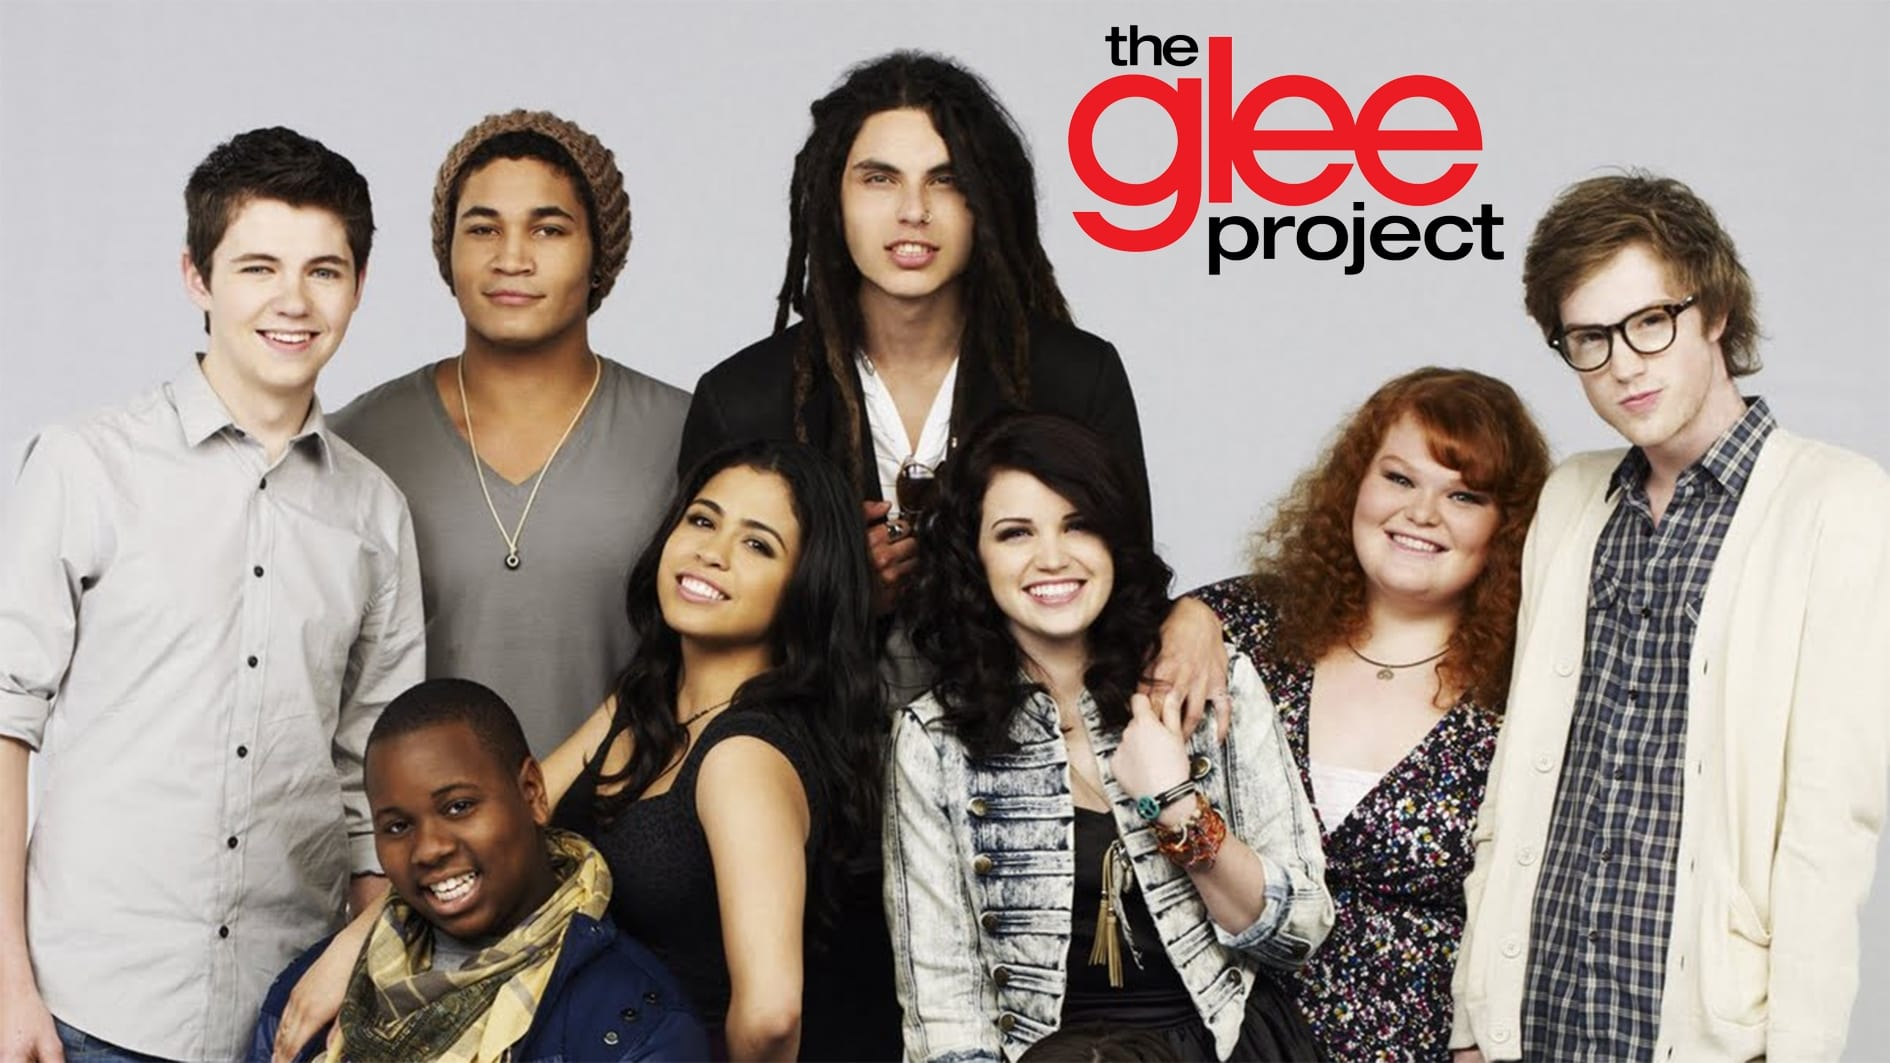 'The Glee Project' Cancelled